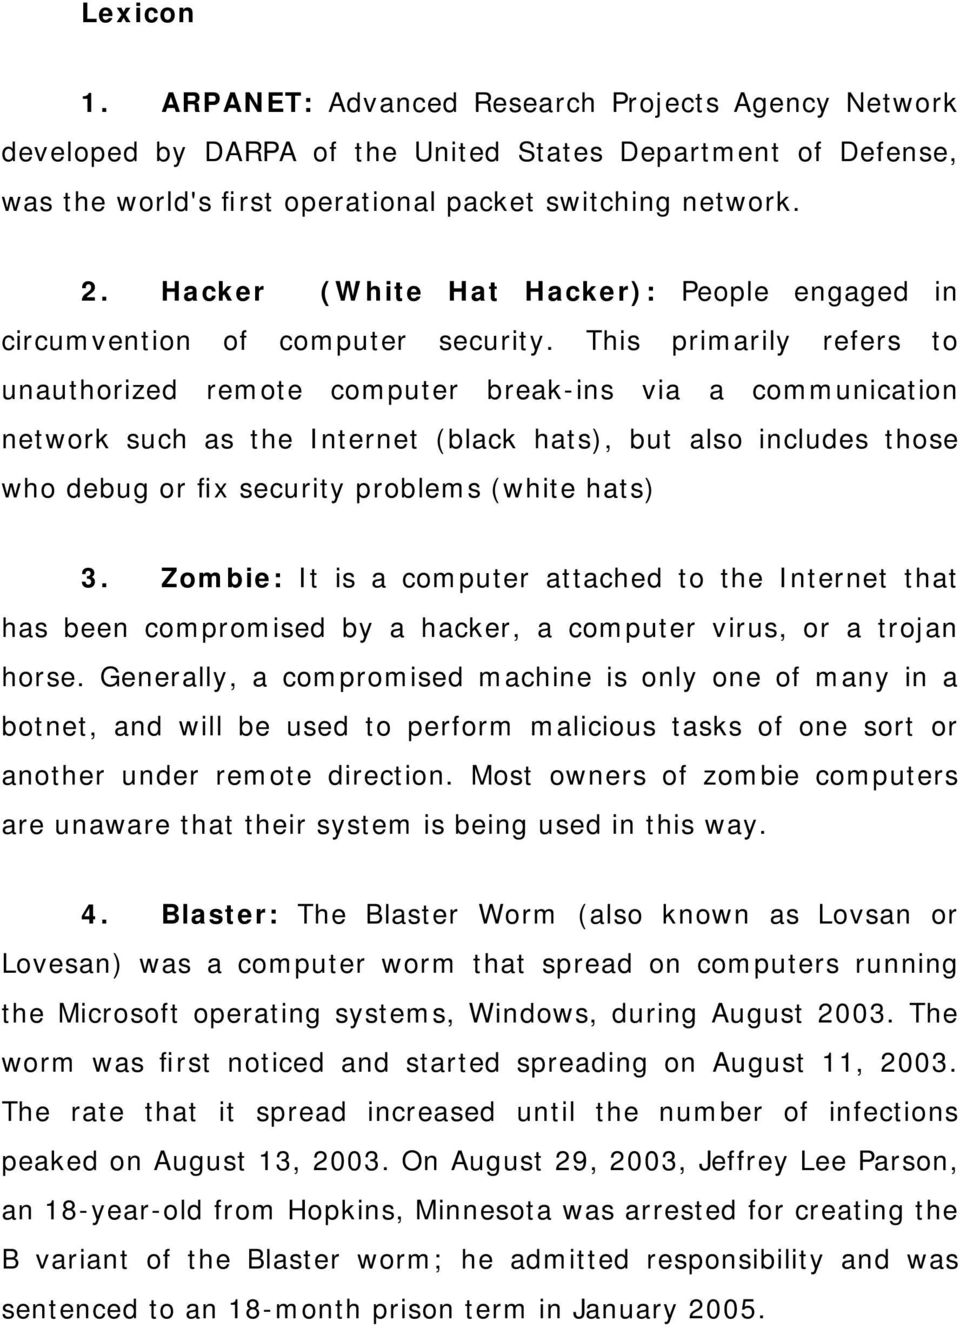 This primarily refers to unauthorized remote computer break-ins via a communication network such as the Internet (black hats), but also includes those who debug or fix security problems (white hats)